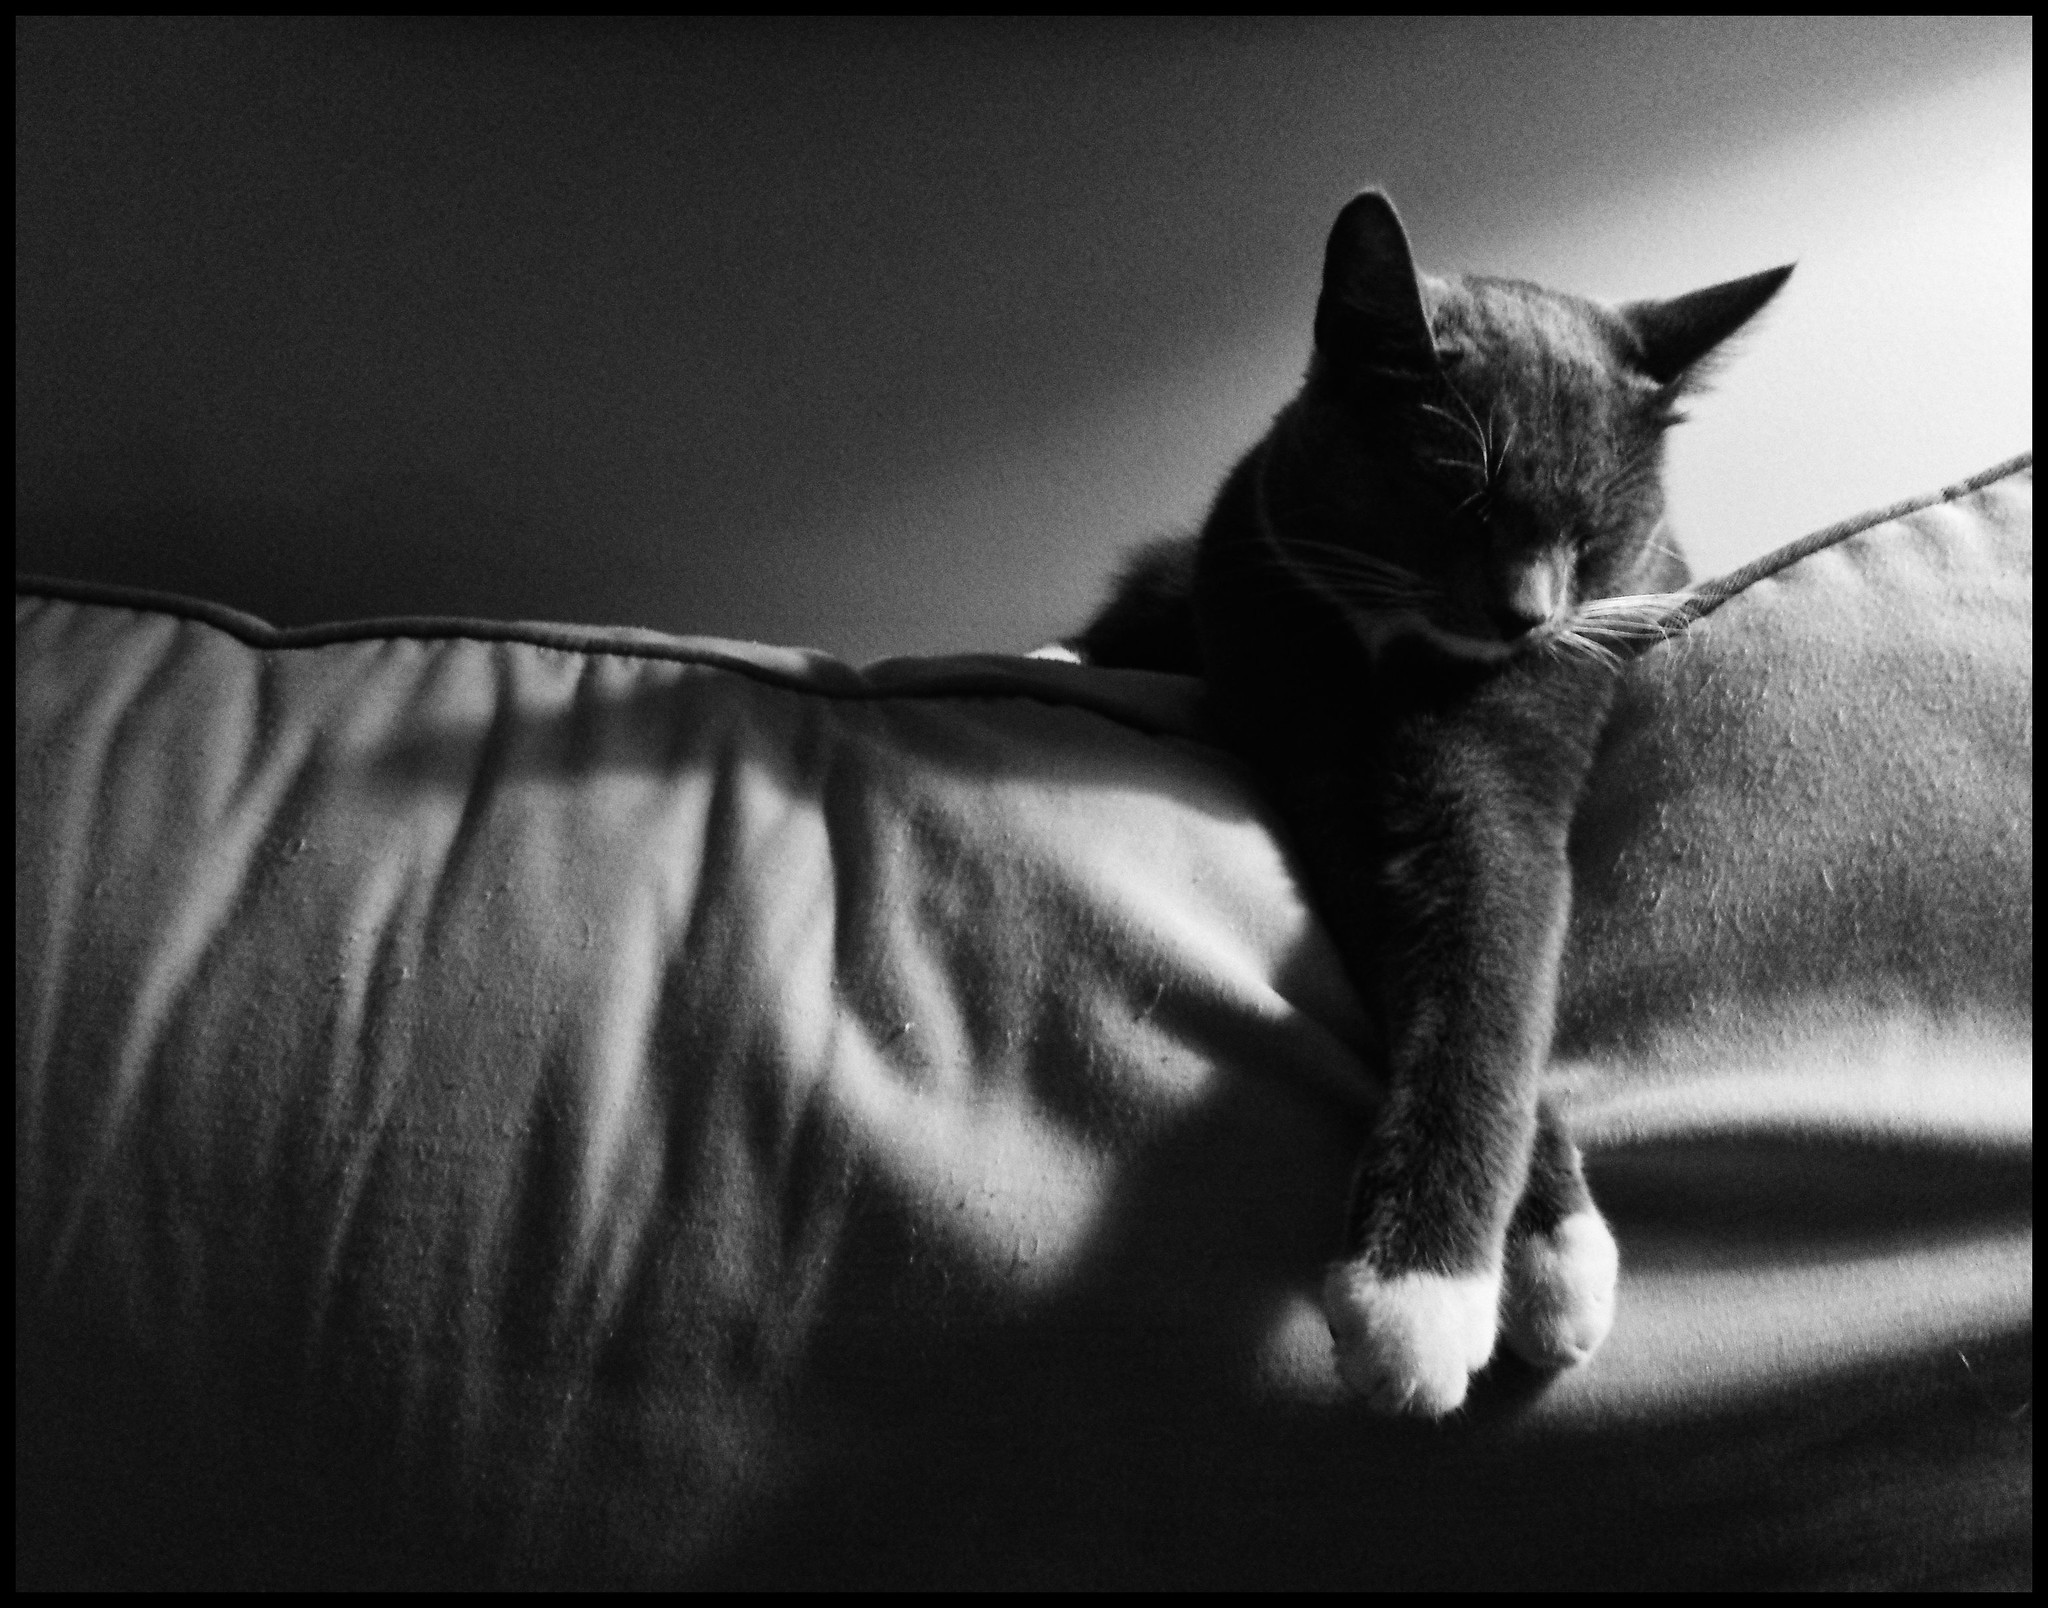 1012: black and white image of a grey cat with white paws crossed, asleep on the back of the couch.